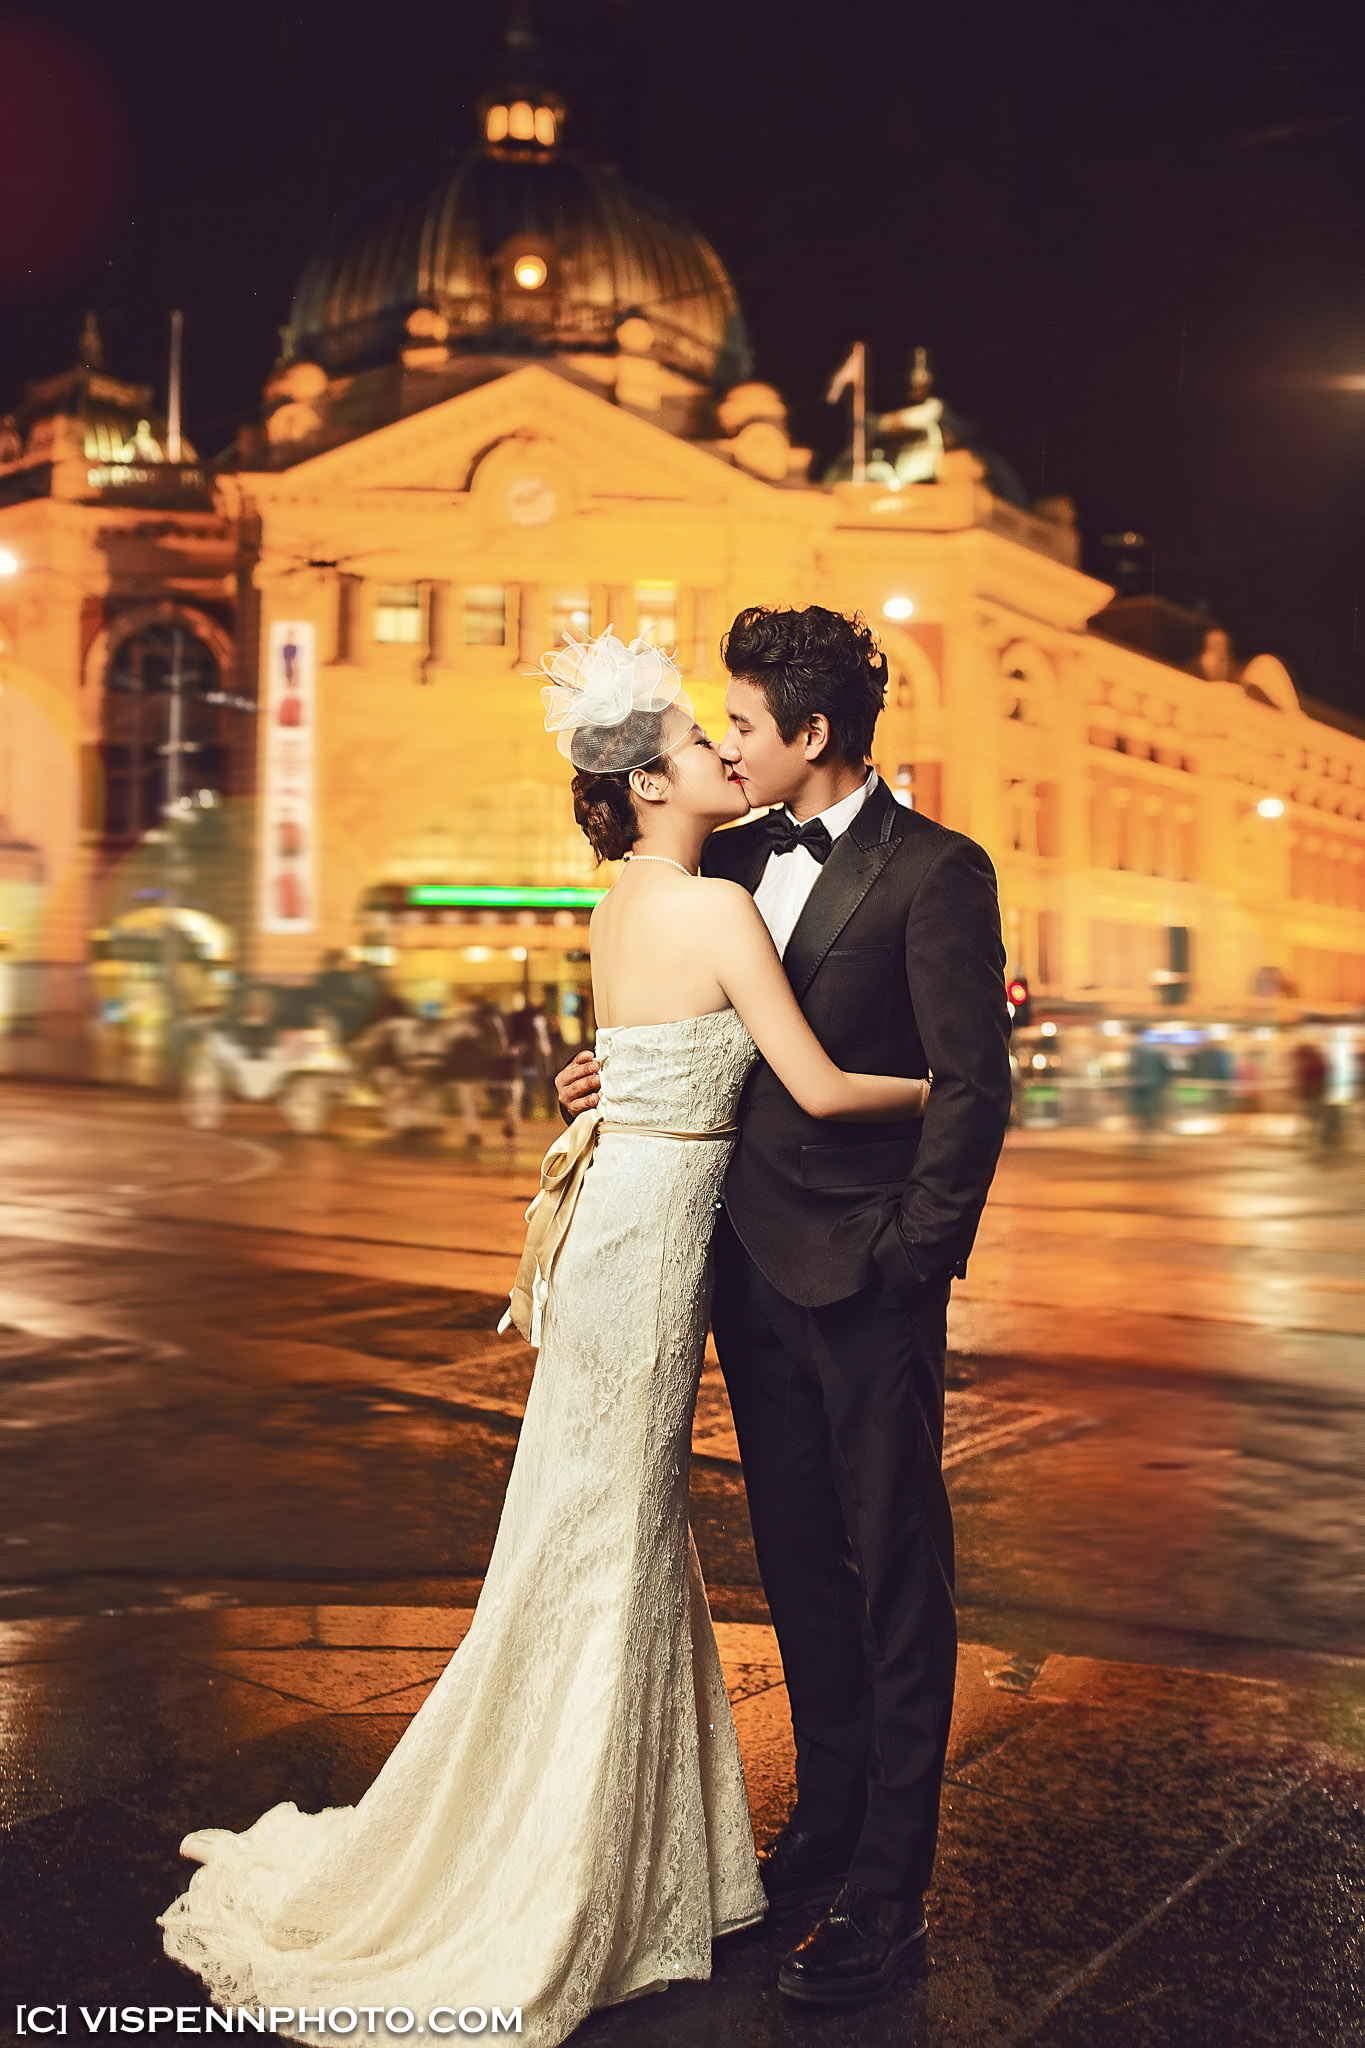 PRE WEDDING Photography Melbourne 5D3 4060